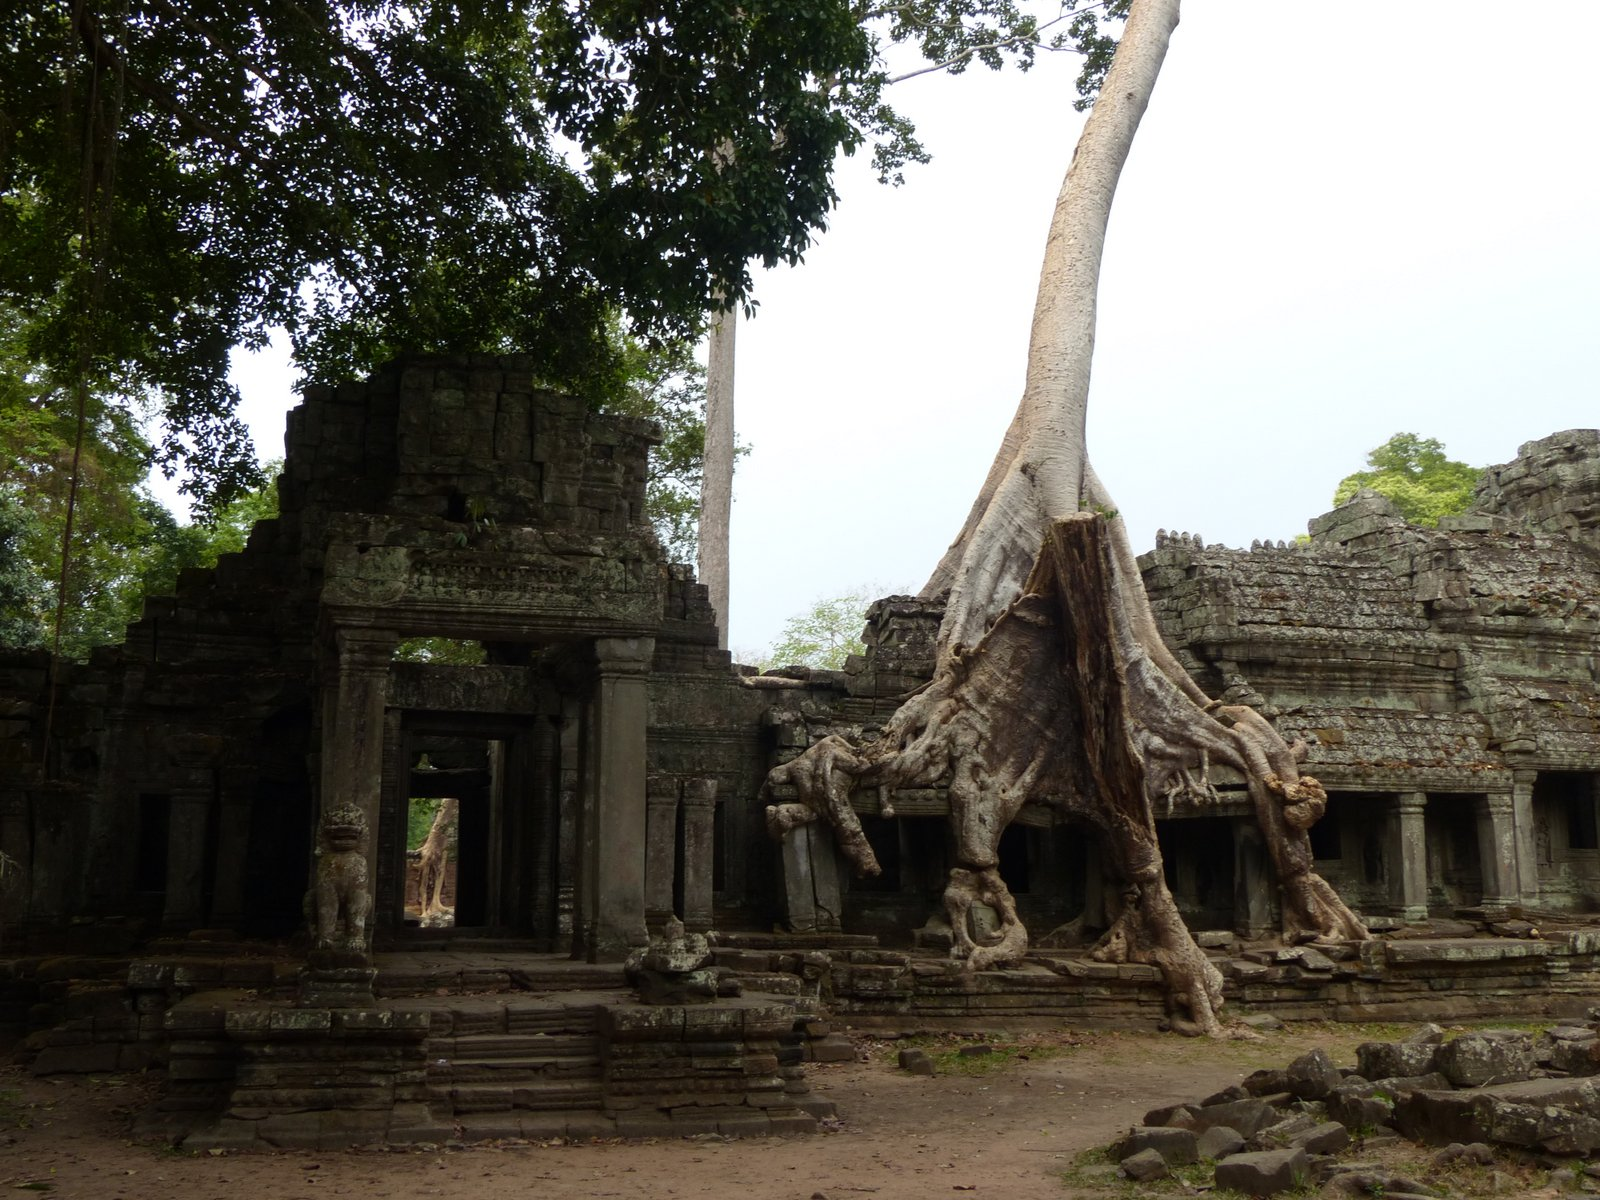 A Banyan tree has taken over, holding on to the structure with a seemingly alien grip.